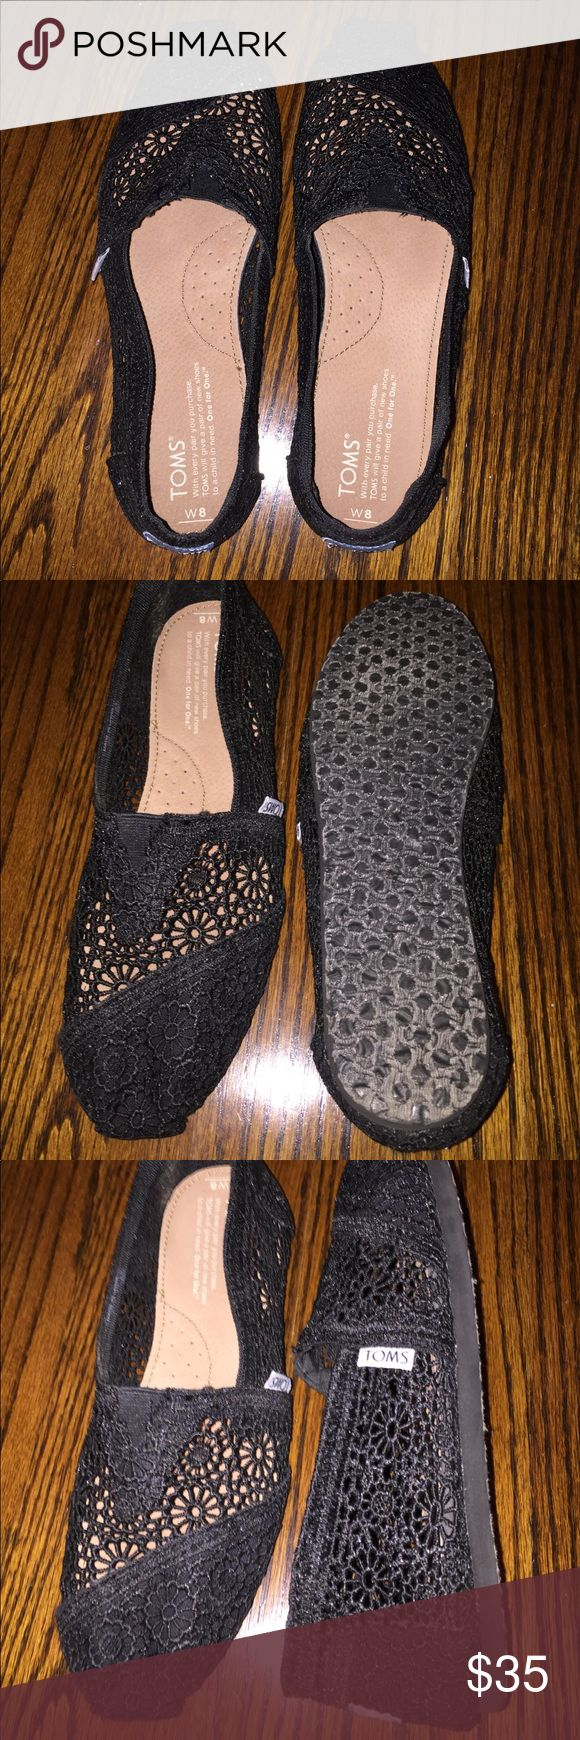 Black lace Toms Black lace Toms. Size 8. Worn once. With original bag. Toms Shoes Flats & Loafers